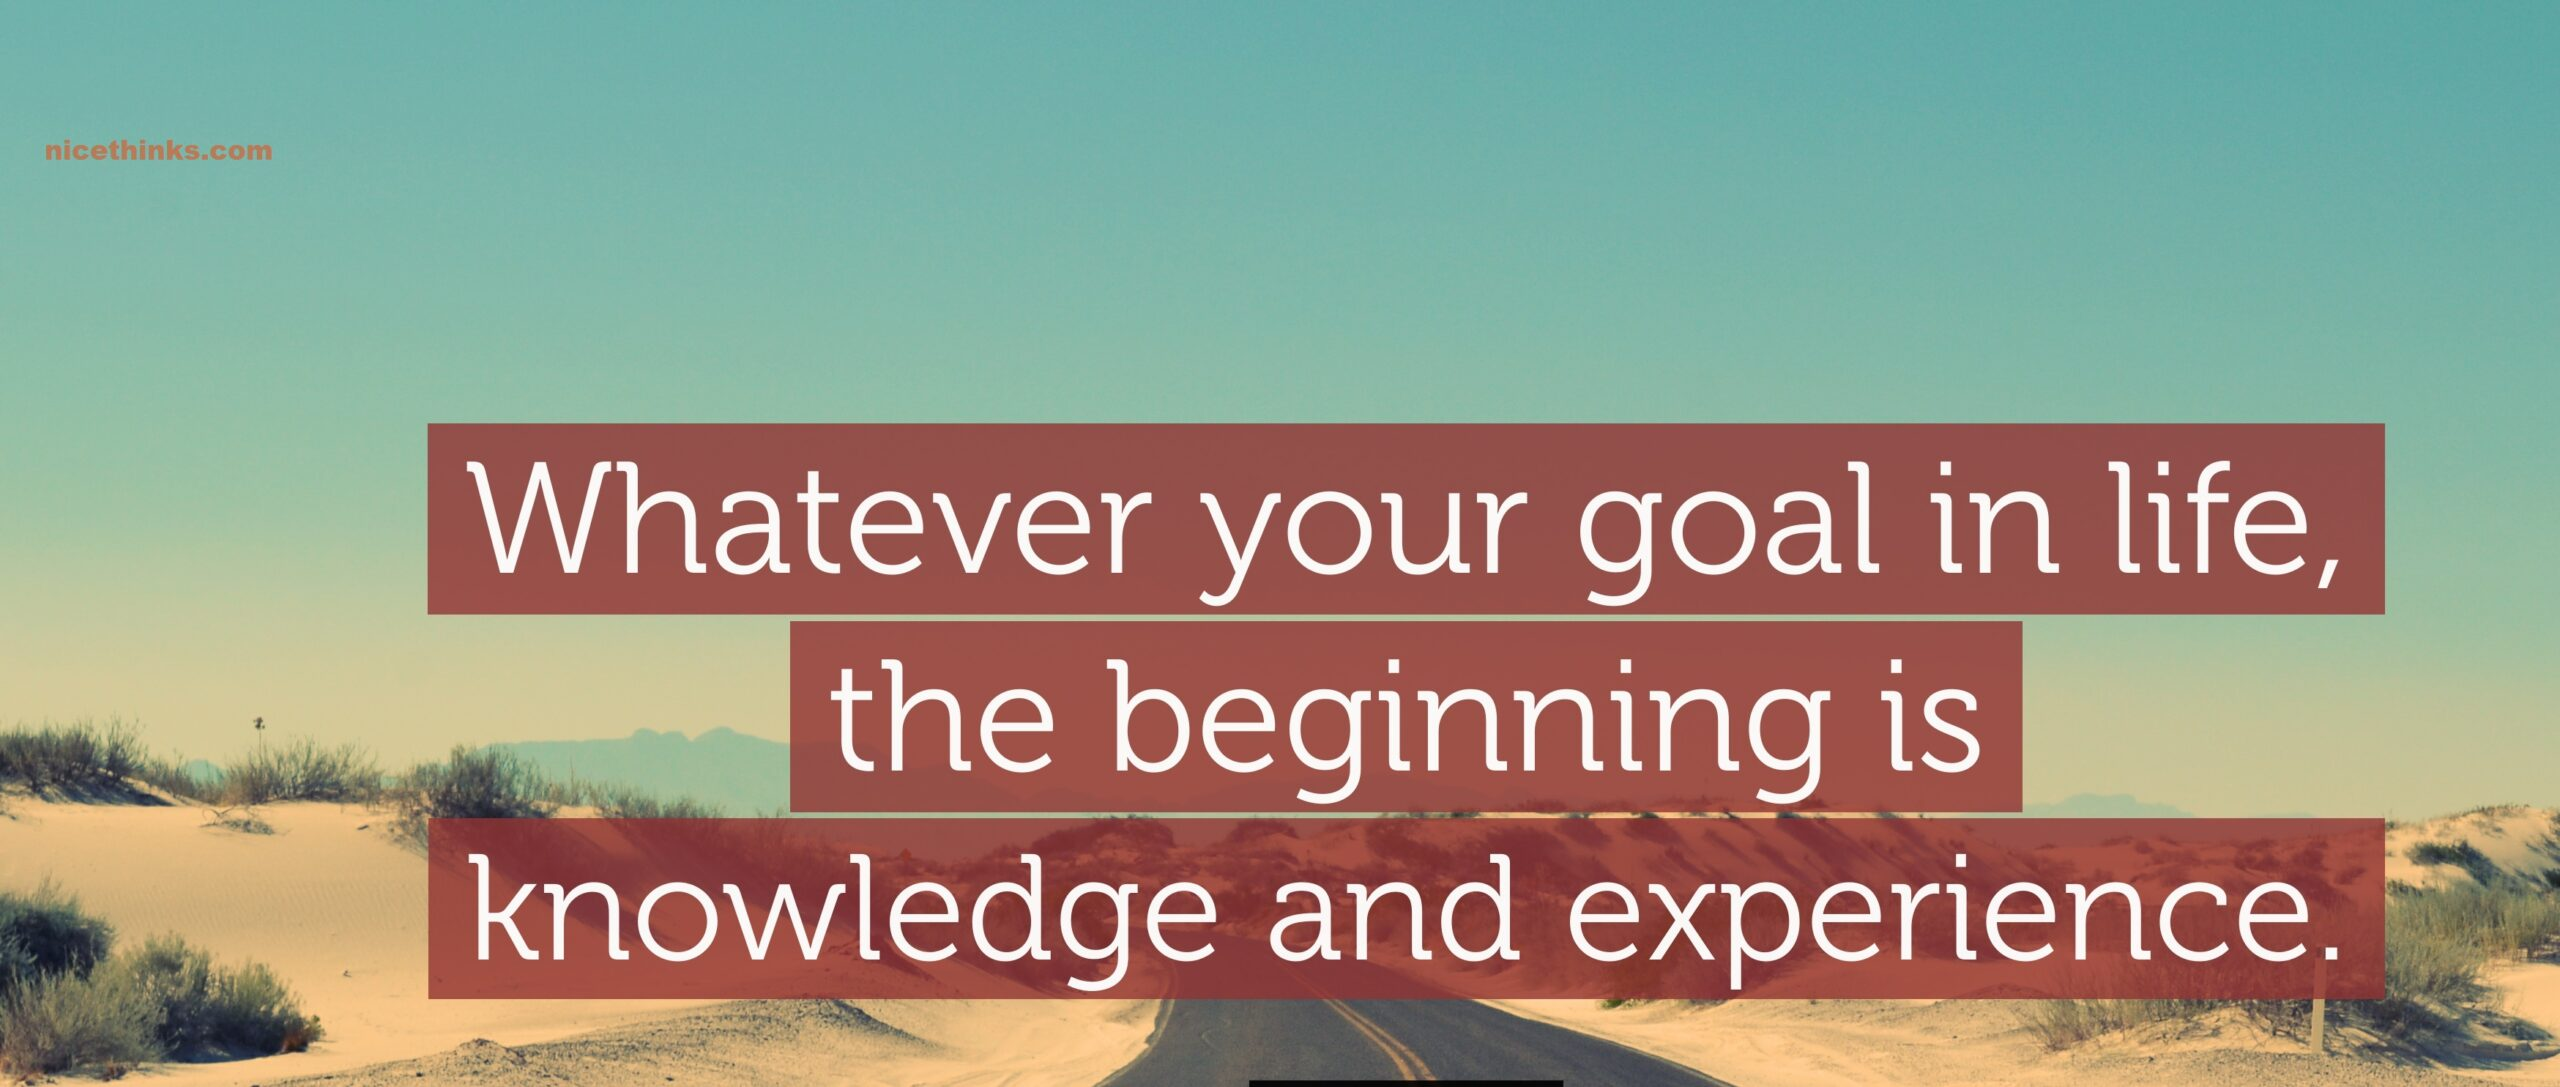 Experience with your goal